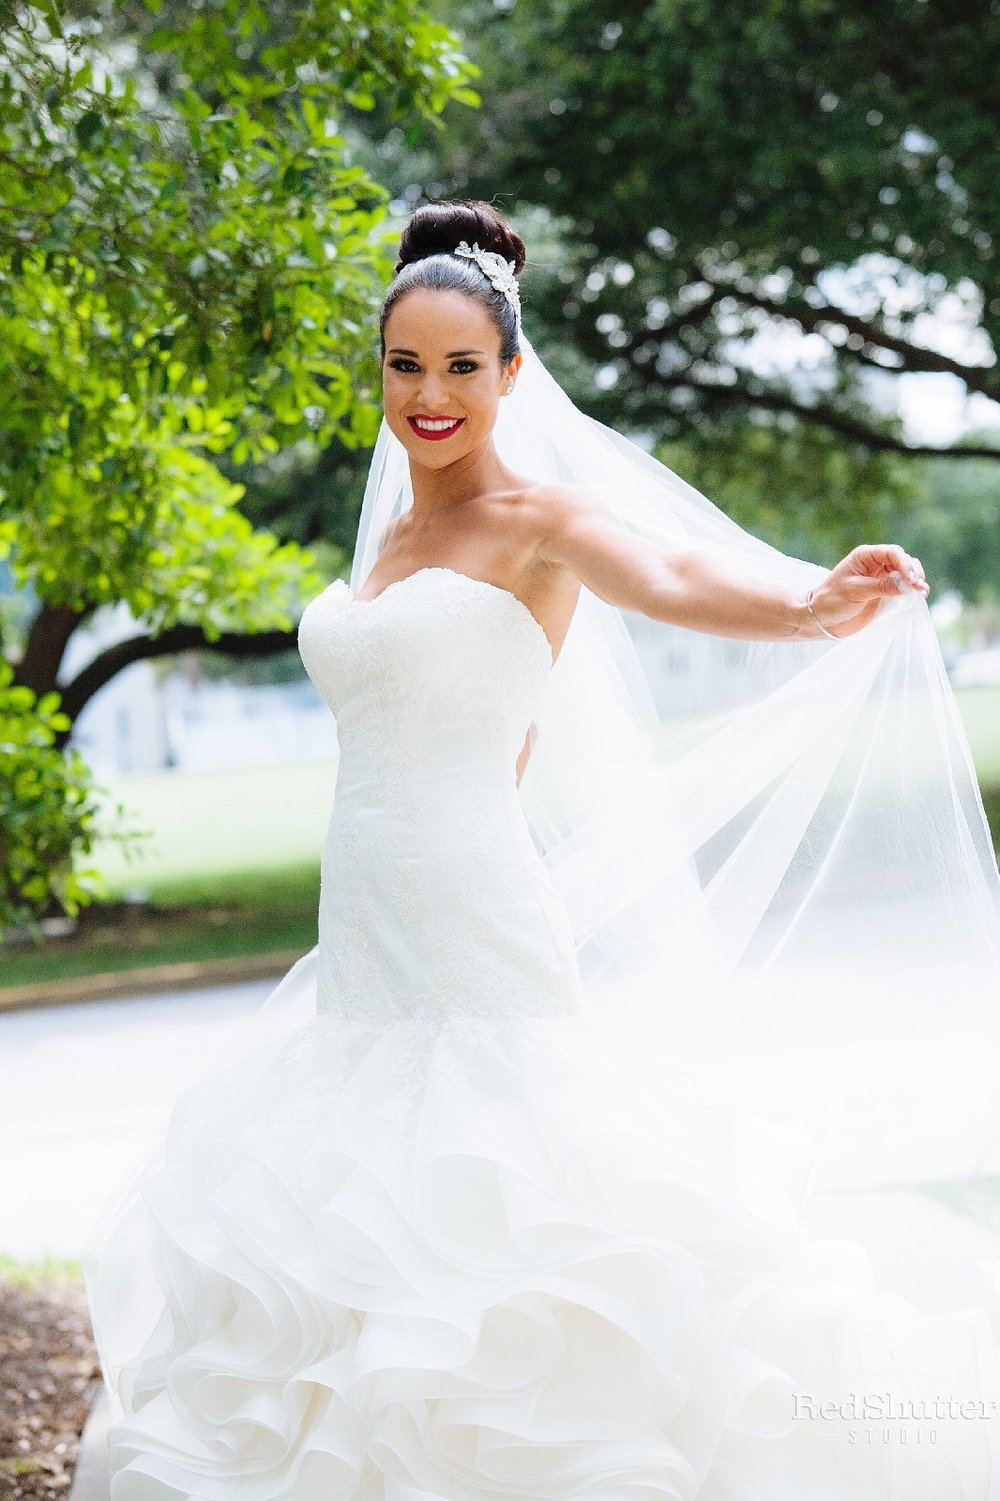 Dreamy gown from Gown Boutique of Charleston Photo Red Shutter Studio